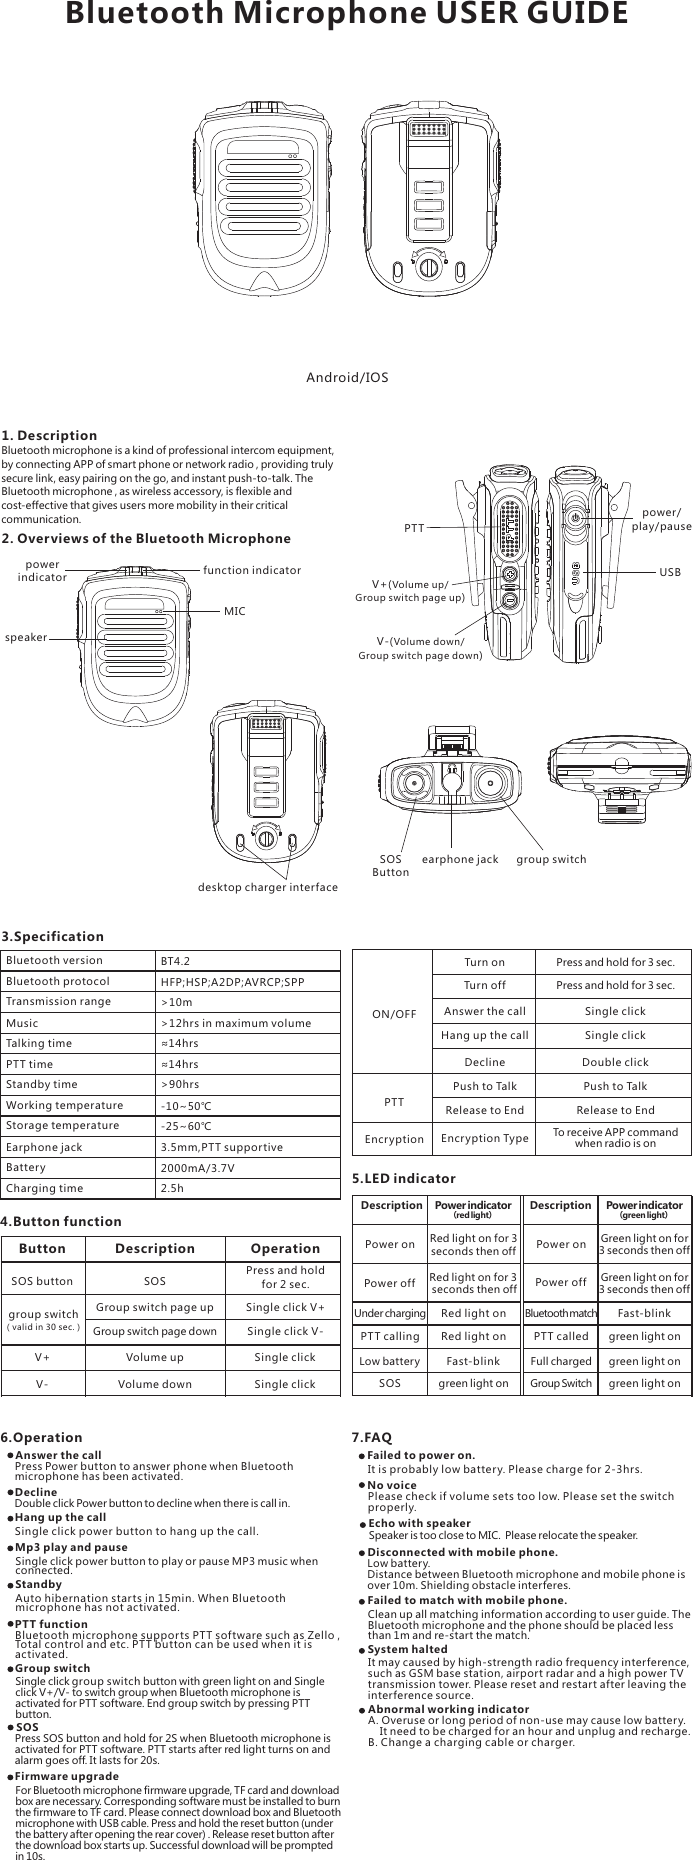 Inrico Electronics B01 Bluetooth Microphone User Manual